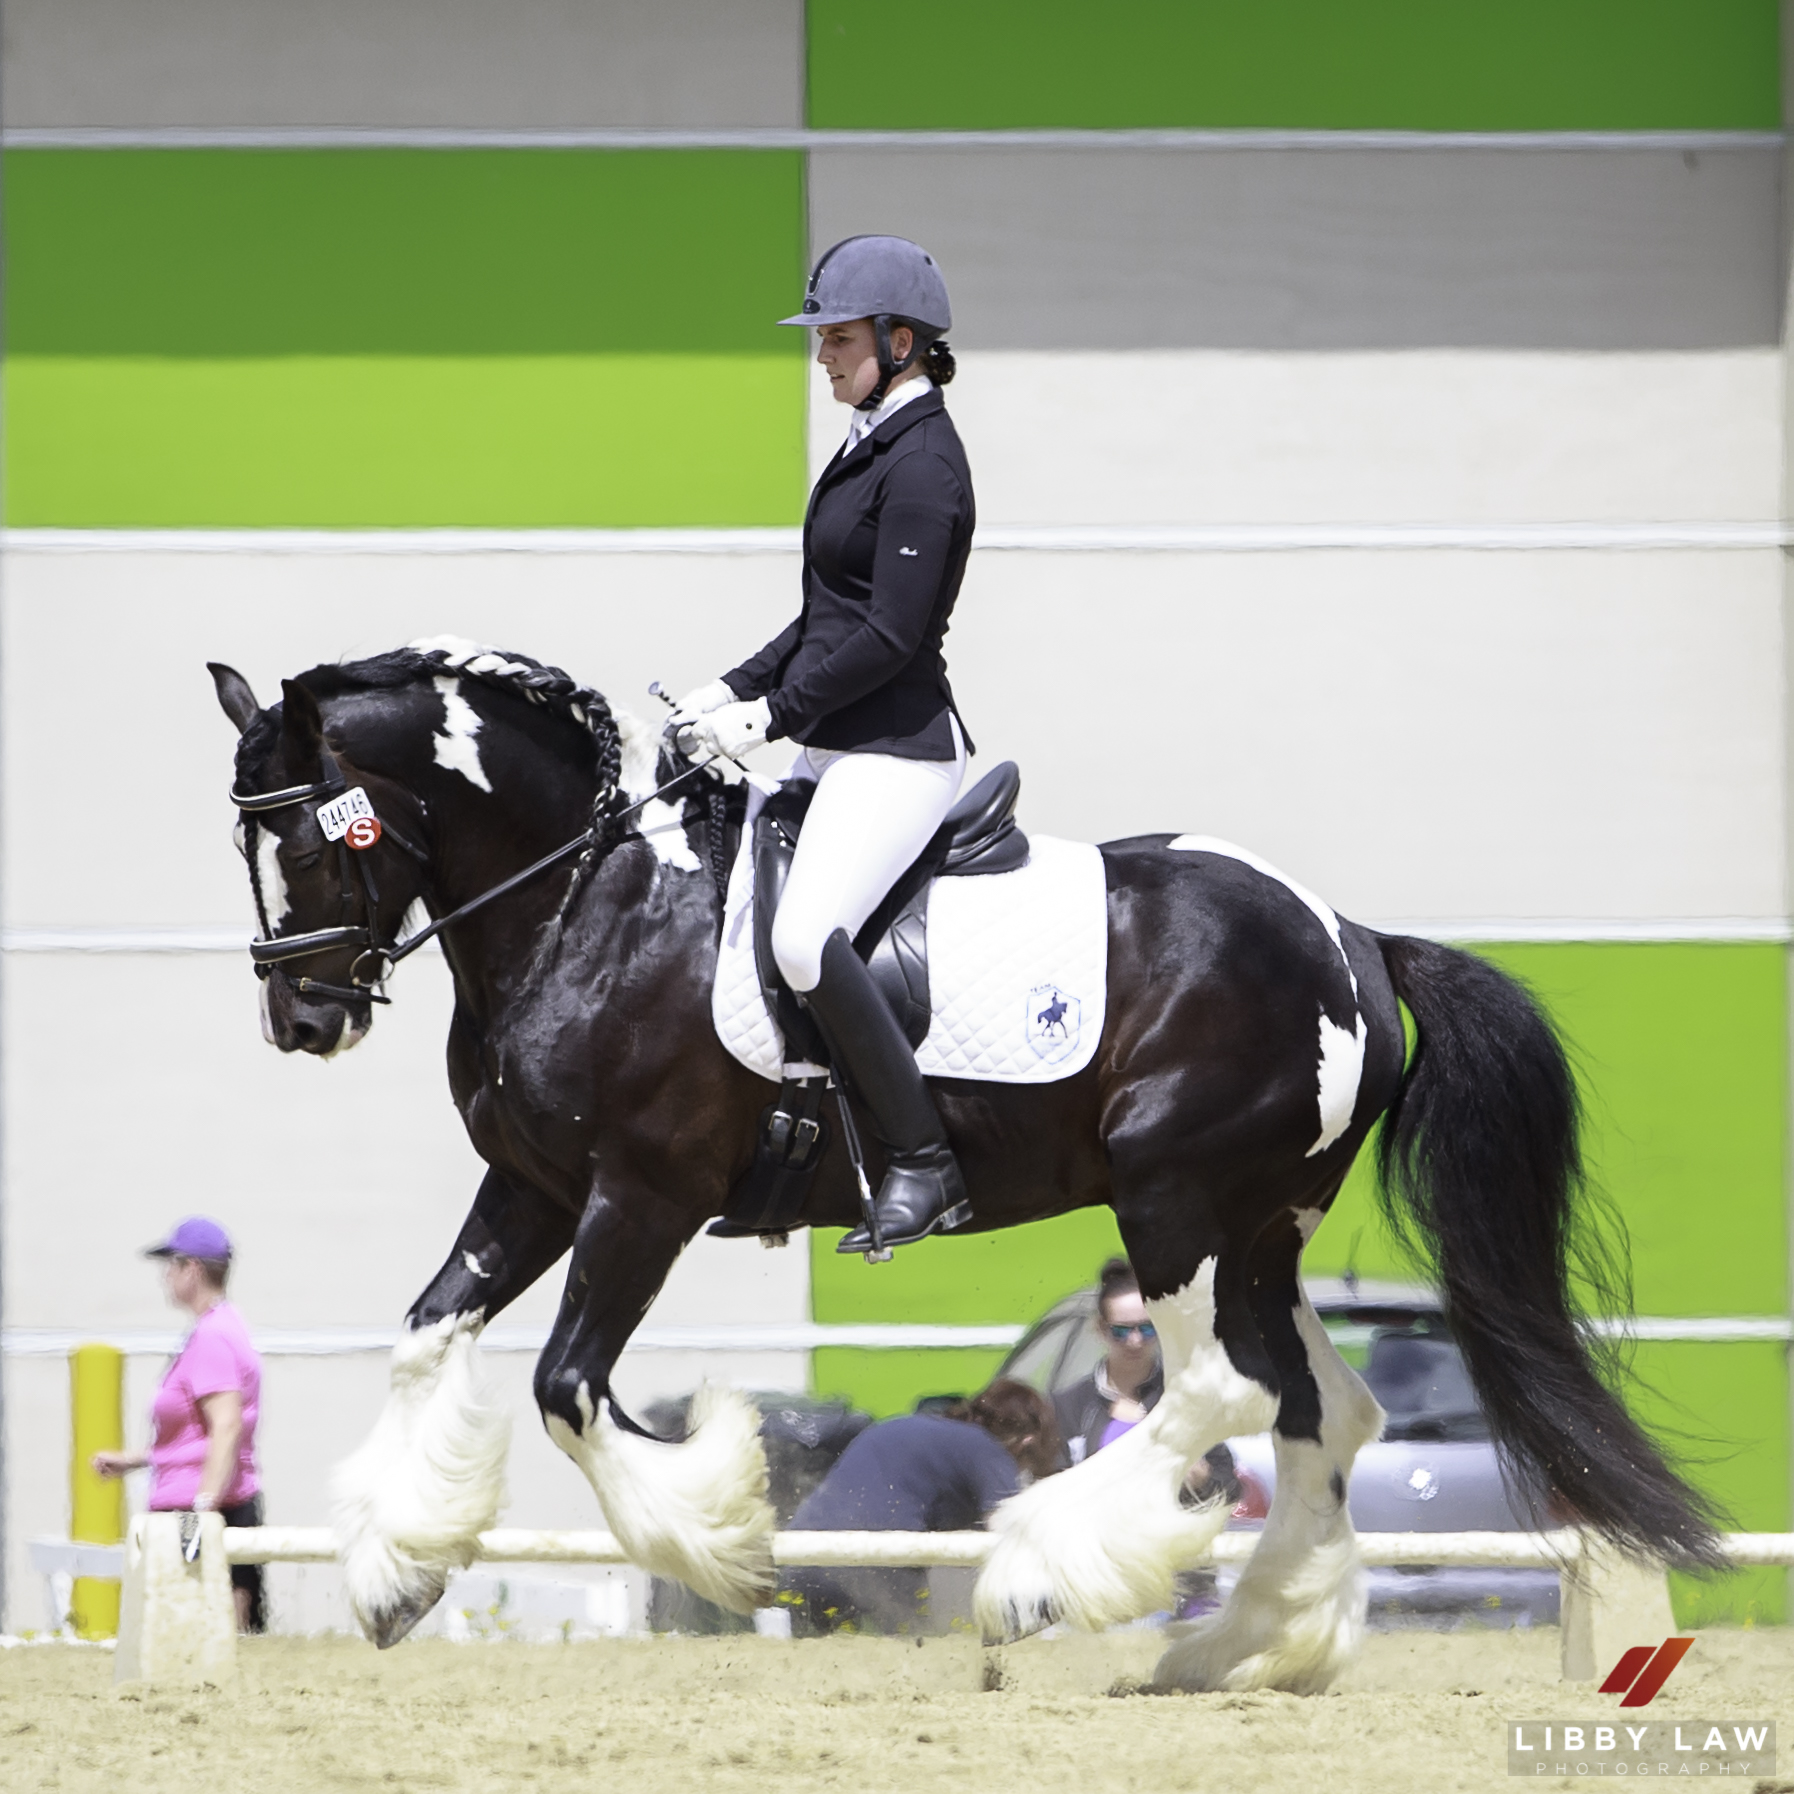 NZL-Chanelle Walsh rides The Lovable Rogue in the Bates Open Championship Level 2 Round 2 - Test 2D. 2017 NZL-Bates NZ Dressage Championships. Manfeild Park, Feilding. Sunday 5 February. Copyright Photo: Libby Law Photography